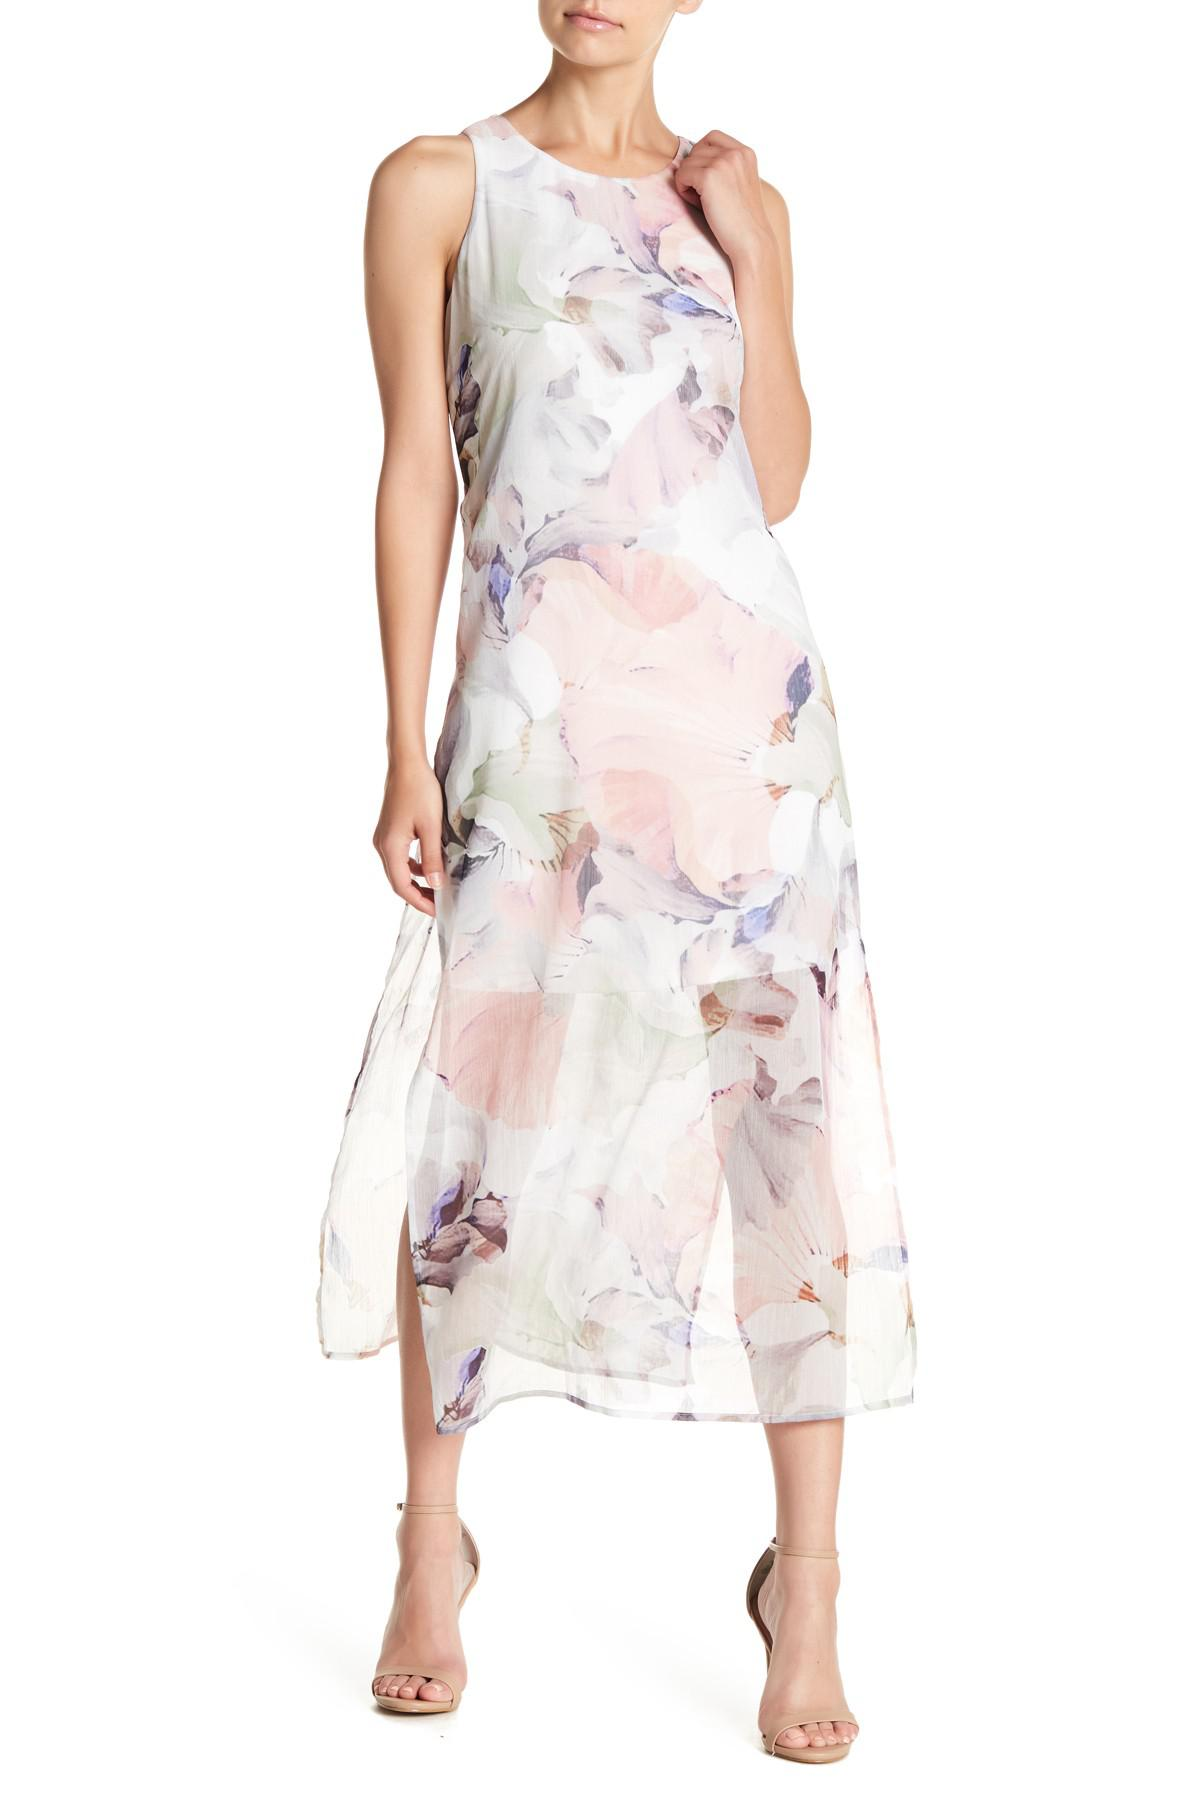 825330598a2a Vince Camuto Sleeveless Diffused Blooms Maxi Dress (petite) in White ...